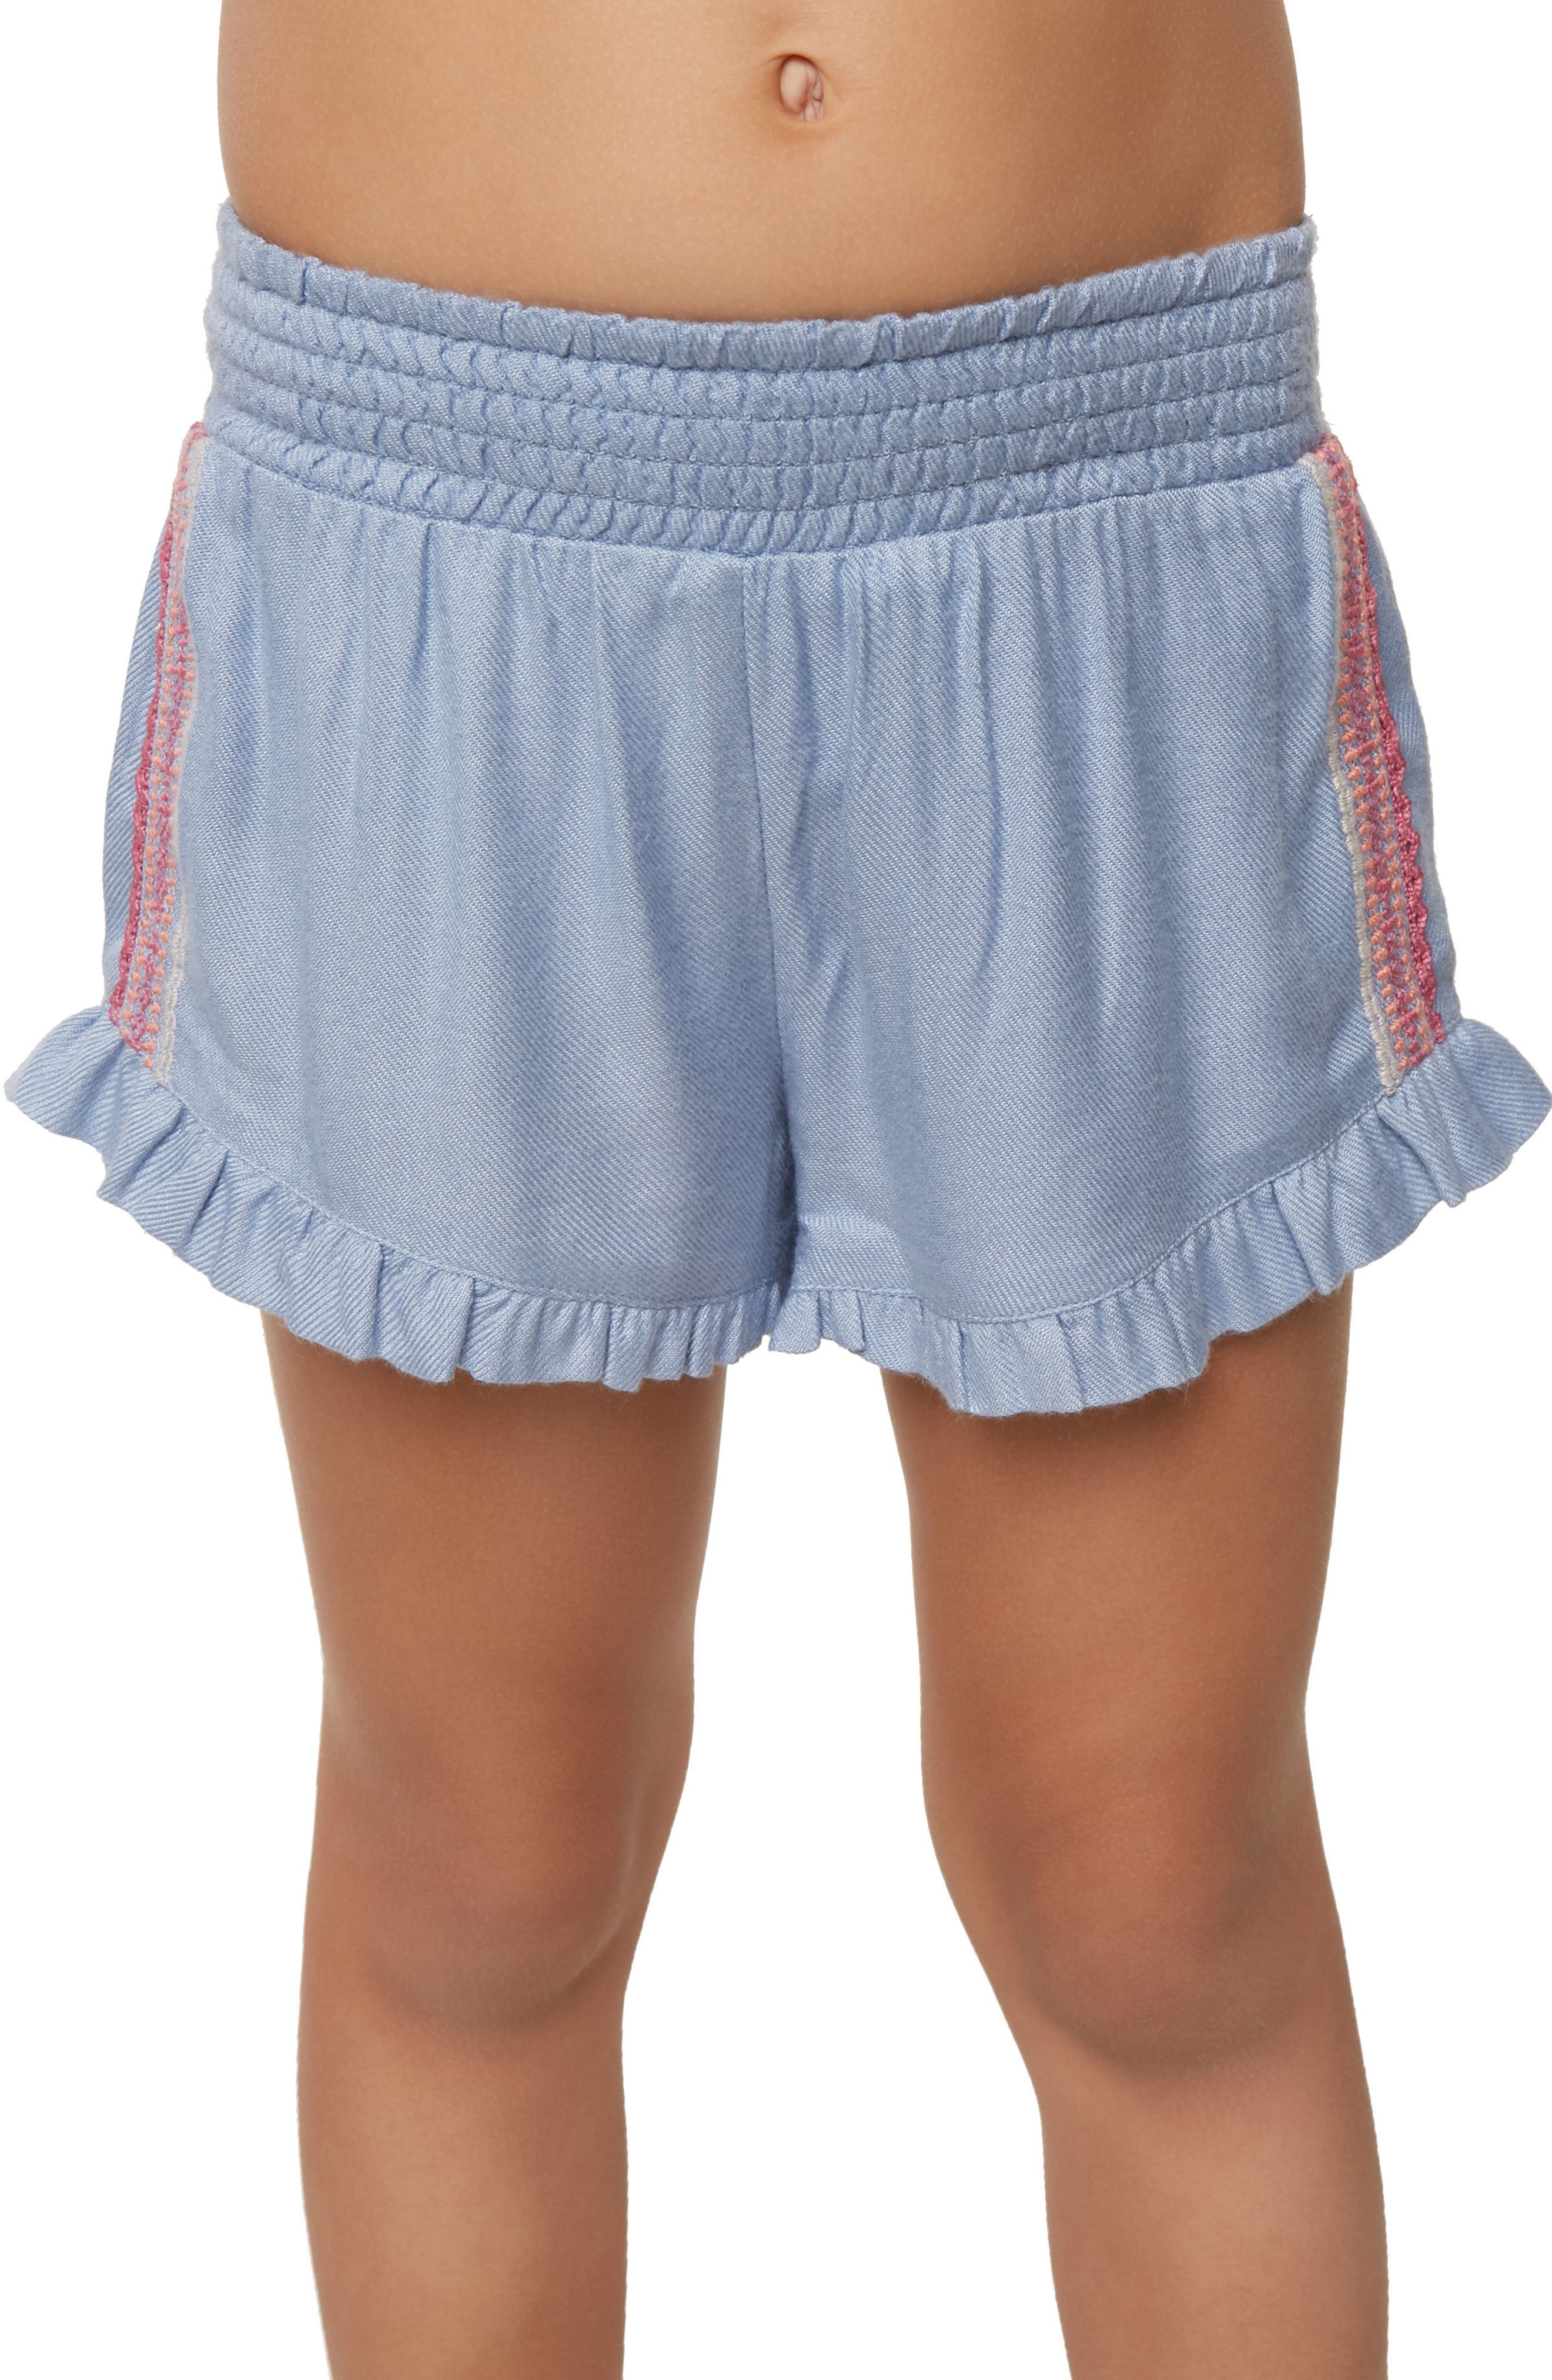 Bay Ruffle Shorts,                             Alternate thumbnail 3, color,                             BLEACHED PERIWINKLE